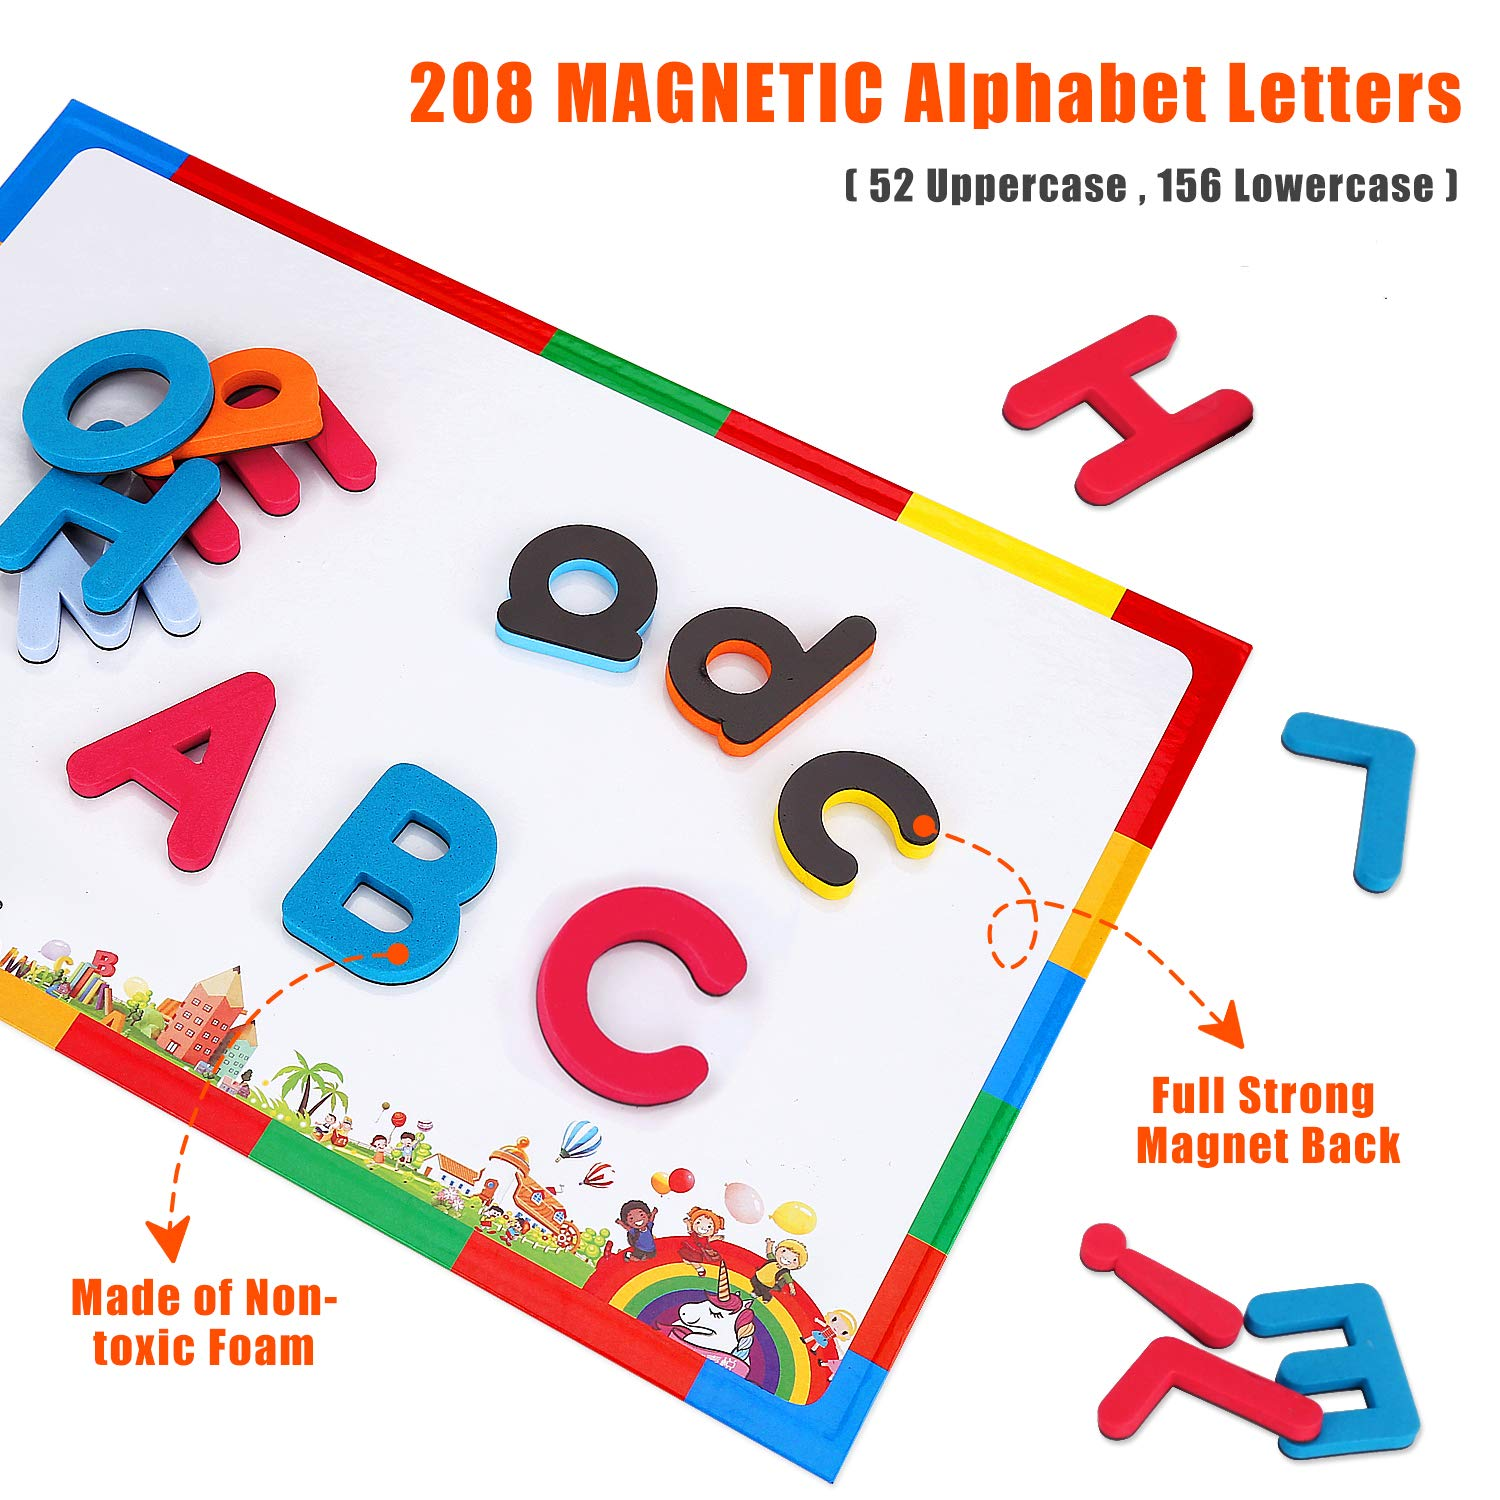 Learn Alphabet magnetic FRIDGE LETTERS PICTURE educational toy kids SPELL MATCH